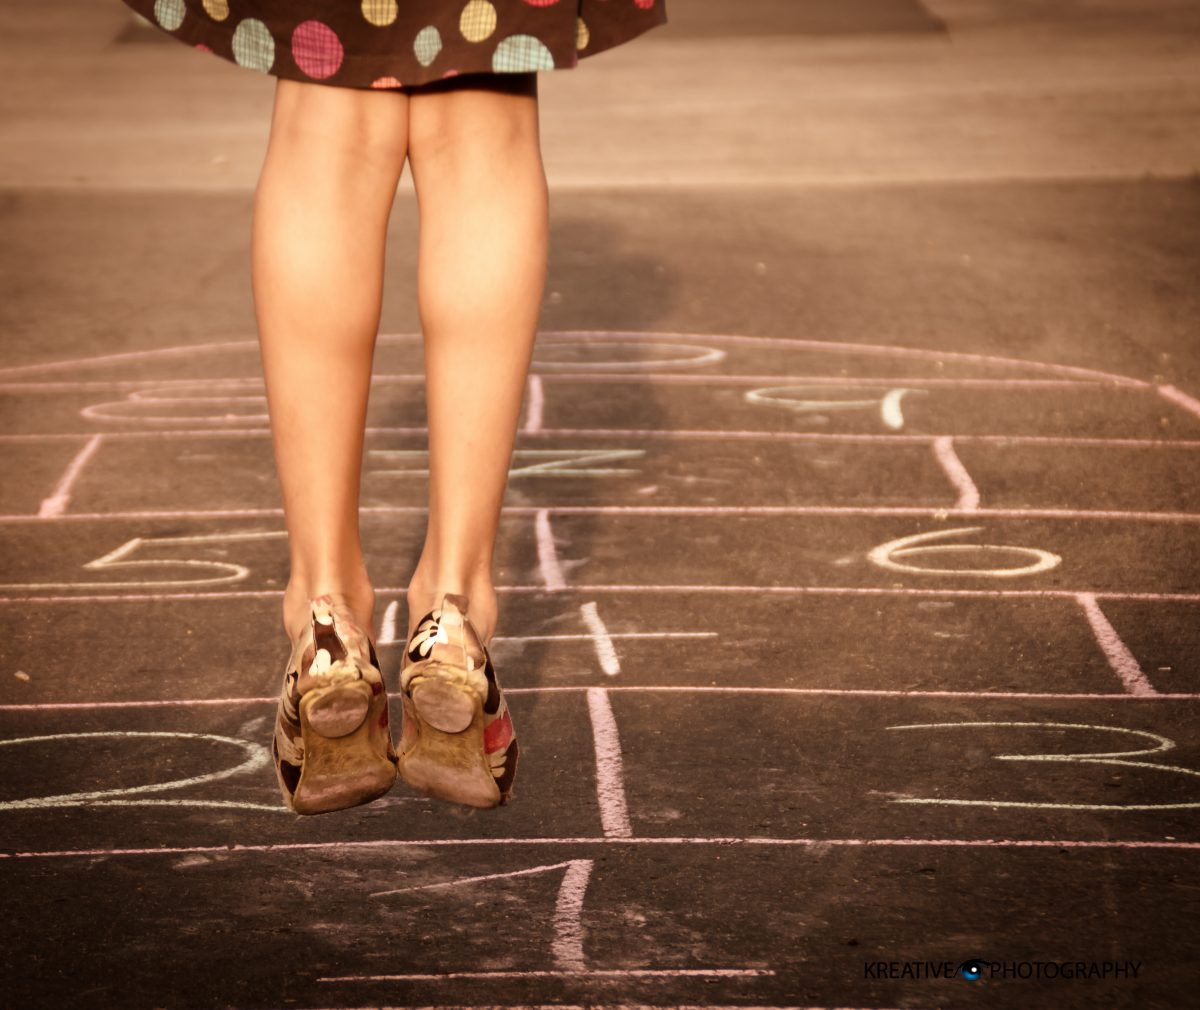 How to Play hopscotch right